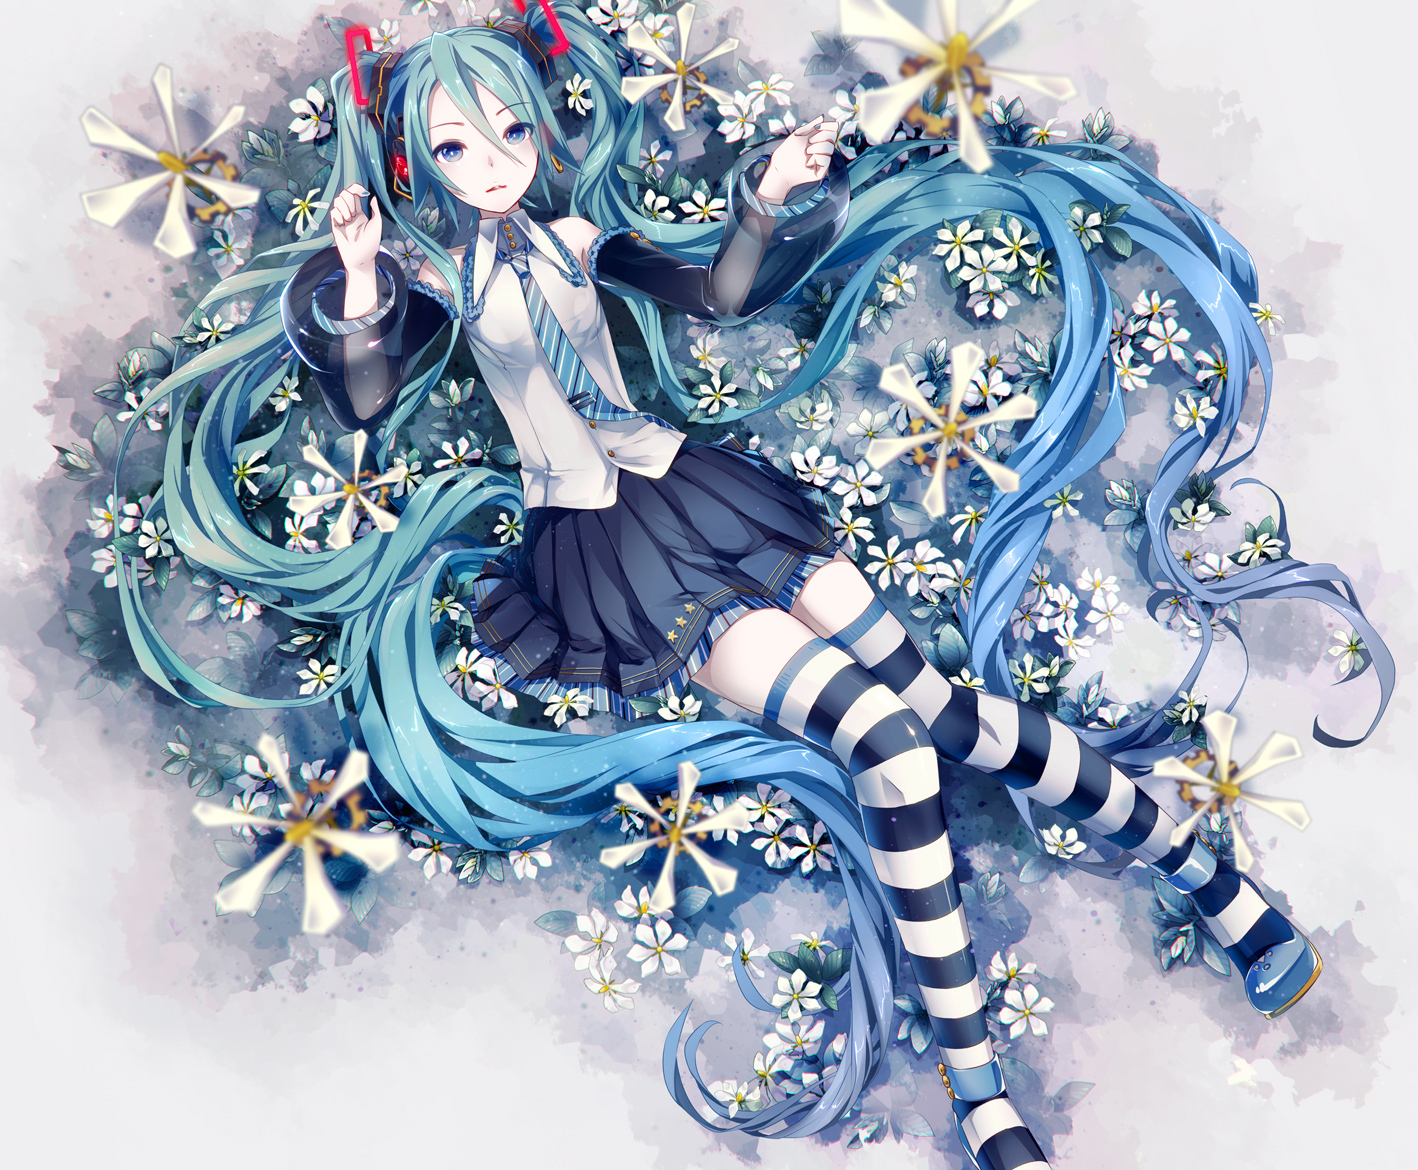 aqua_hair blue_eyes hatsune_miku hatsune_miku_(vocaloid3) ikushima long_hair skirt thighhighs tie twintails vocaloid zettai_ryouiki